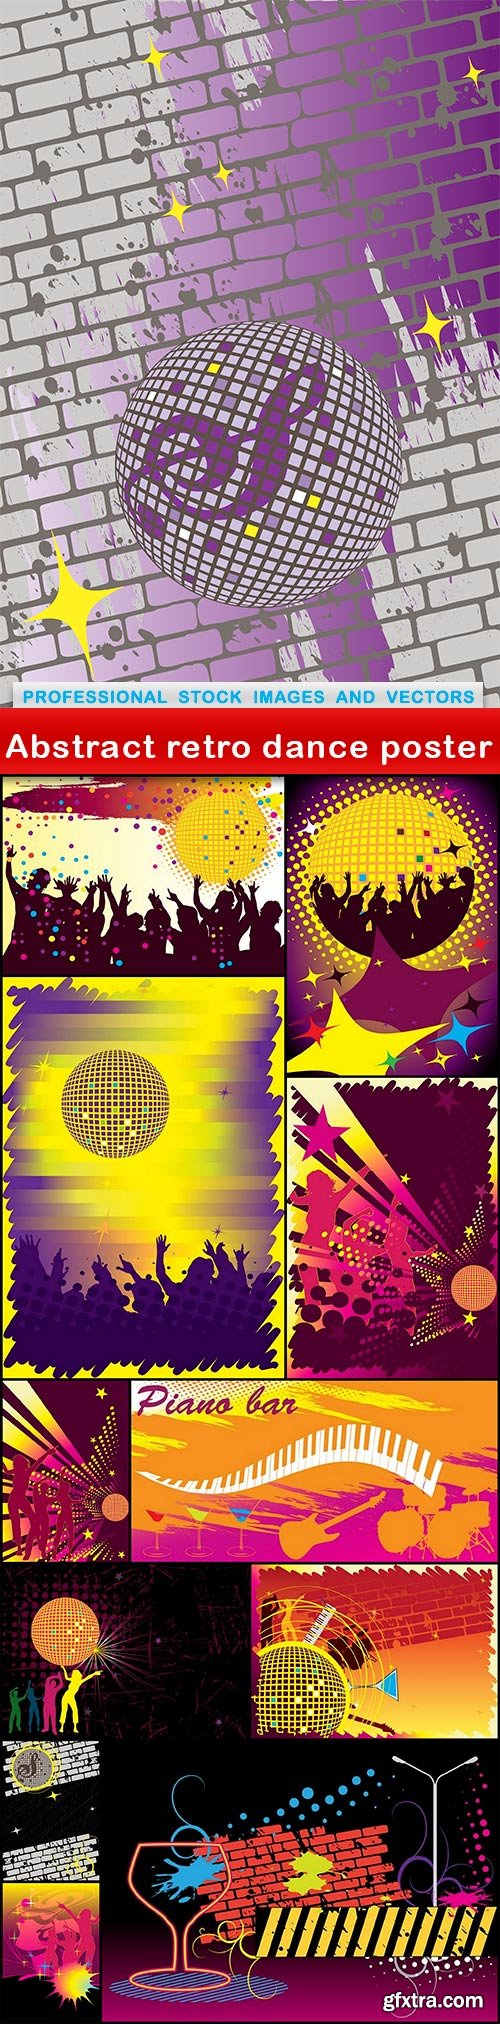 Abstract retro dance poster - 12 EPS